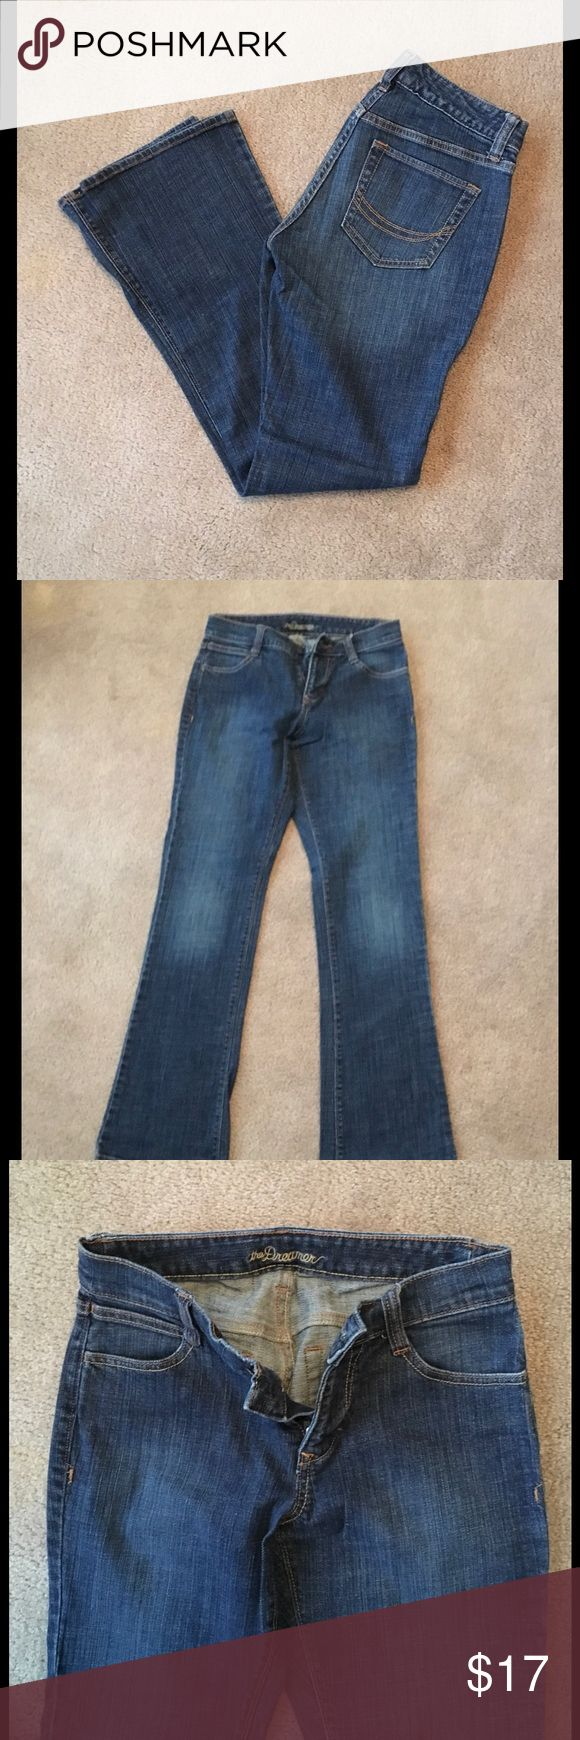 Old Navy Boot Cut Dreamer Jeans - Sz - 1 Old Navy Boot Cut Dreamer Jeans - Sz - 1.  Mid Rise Old Navy Jeans Boot Cut